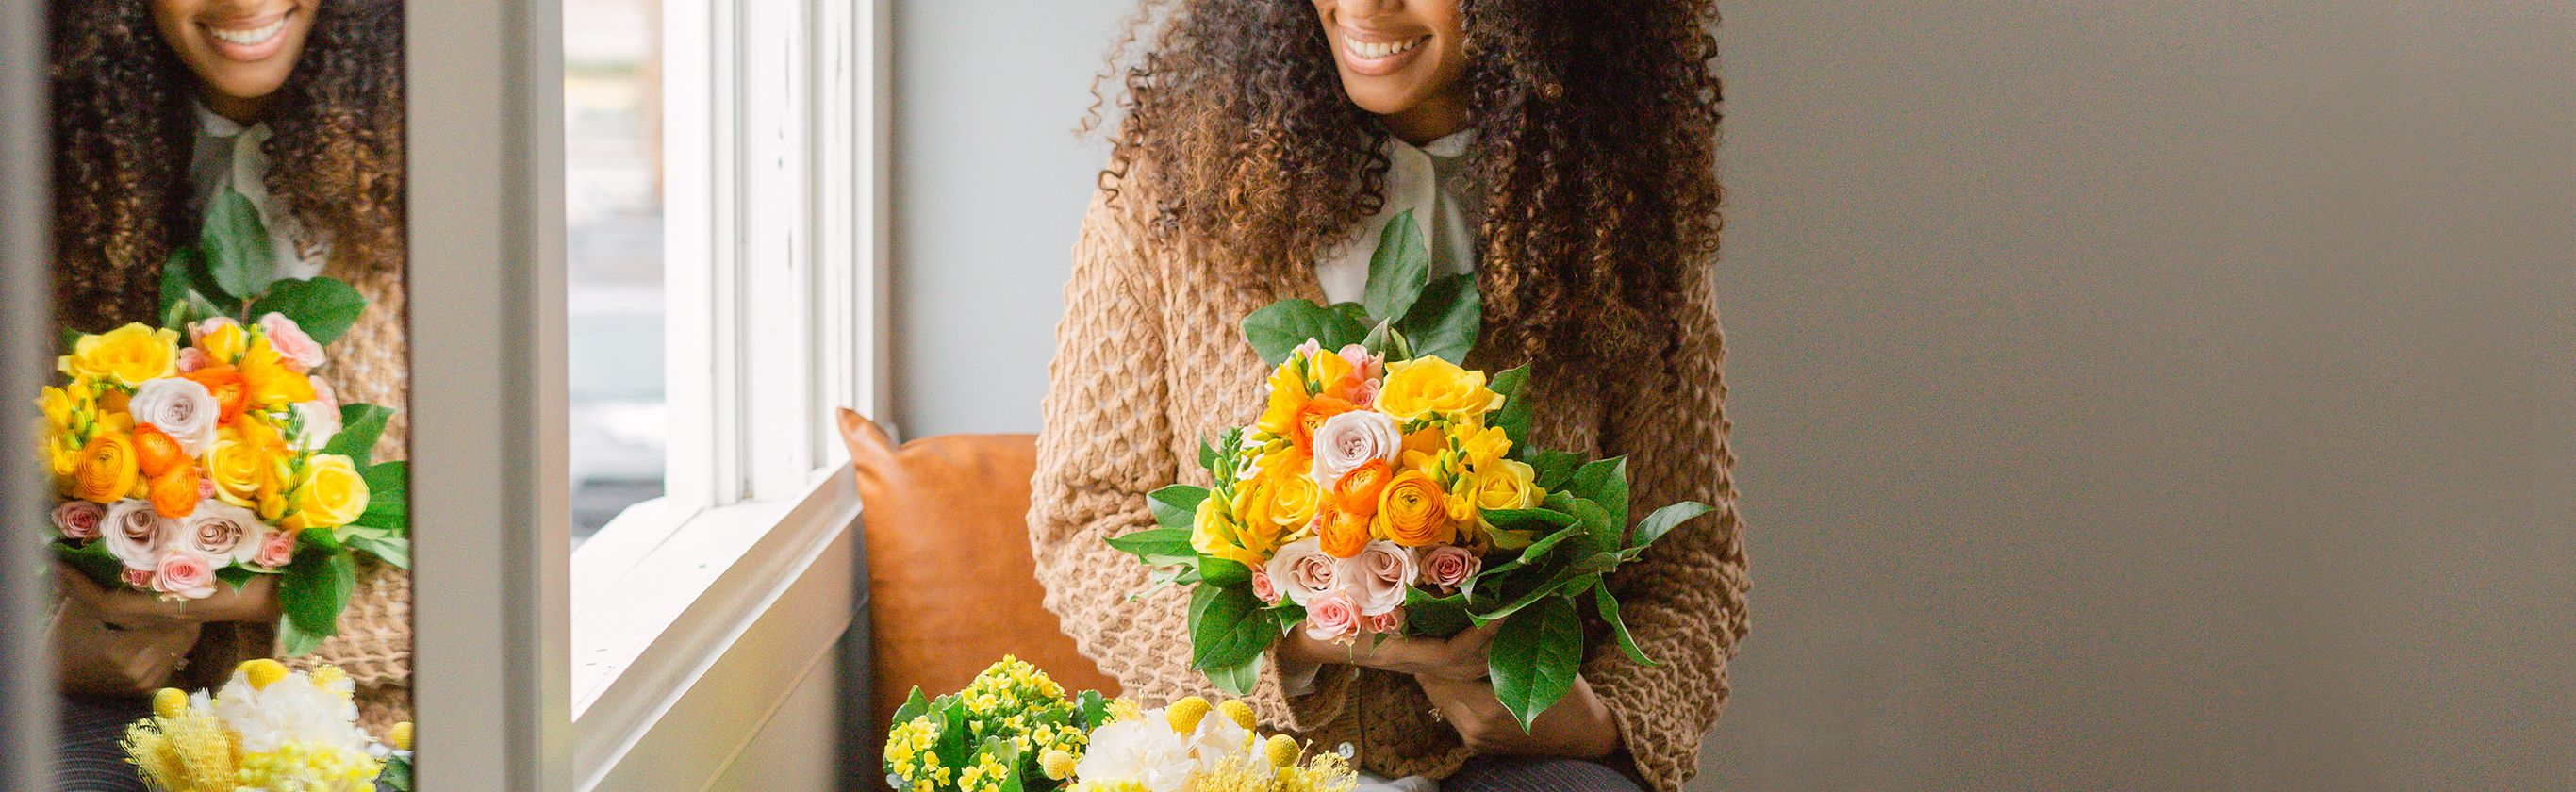 flower delivery subscription